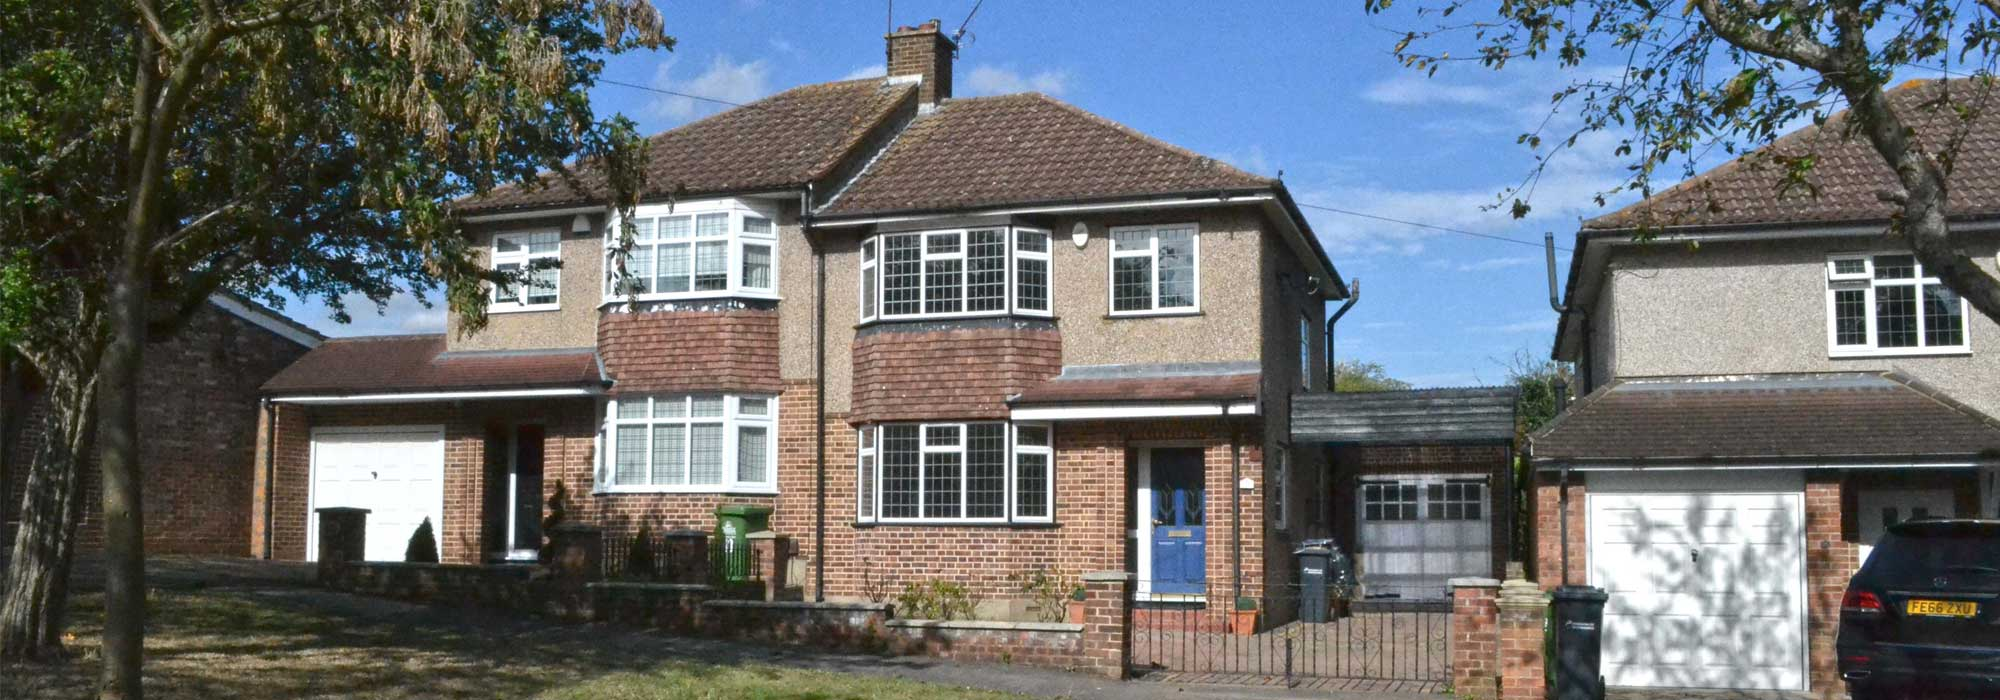 Graham Avenue, Broxbourne, EN10 7DS